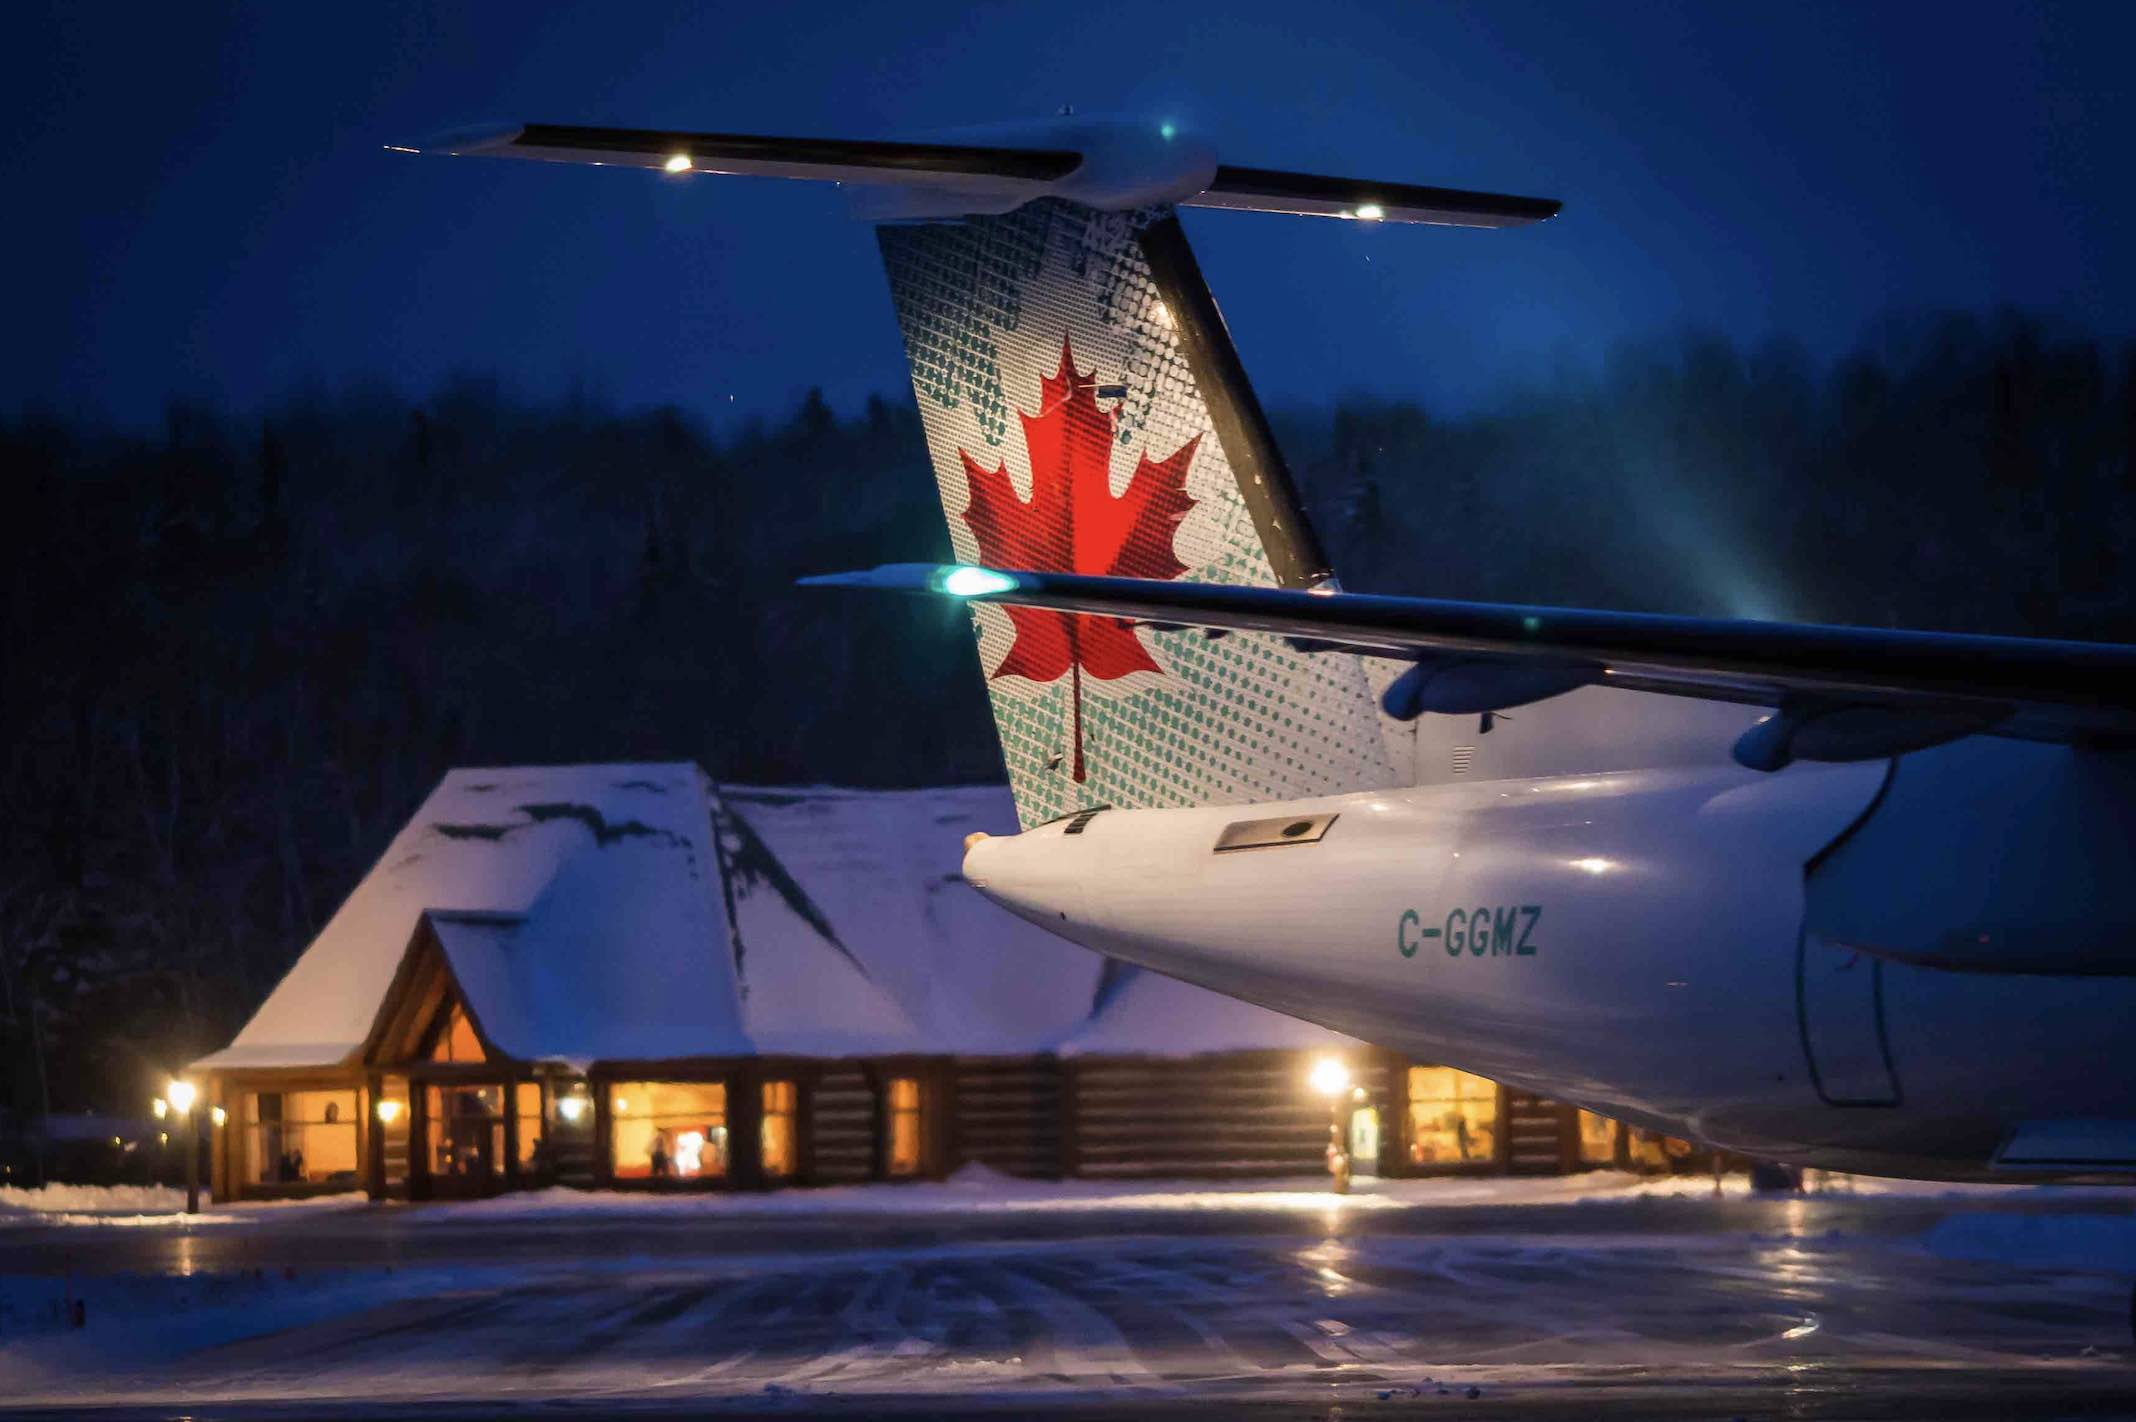 Air Canada jet sitting at airport in Mont-Tremblant at night